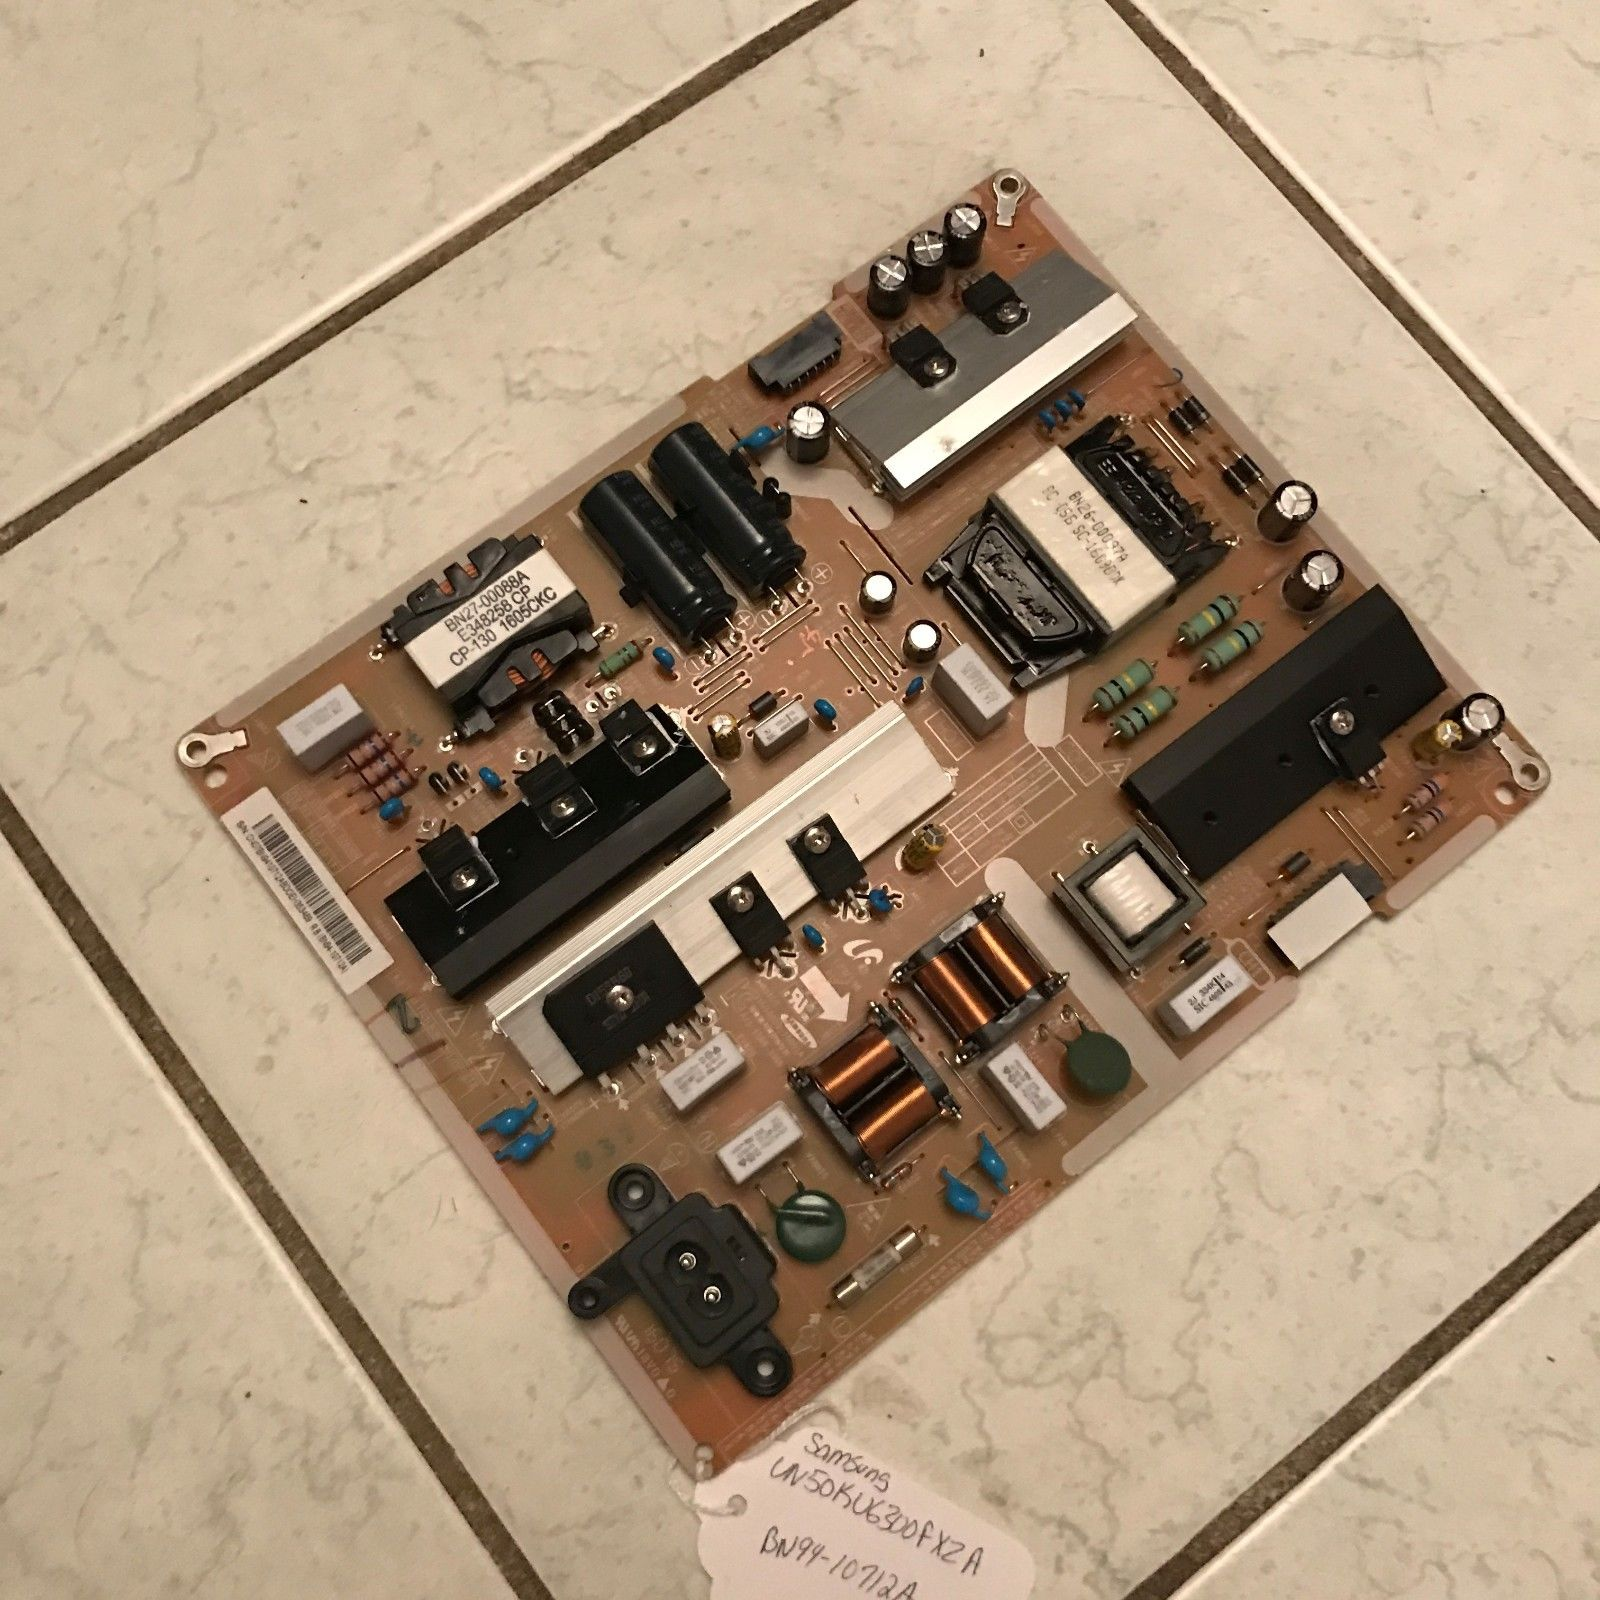 SAMSUNG BN94-10712A POWER SUPPLY BOARD FOR UN50KU6300 AND OTHER